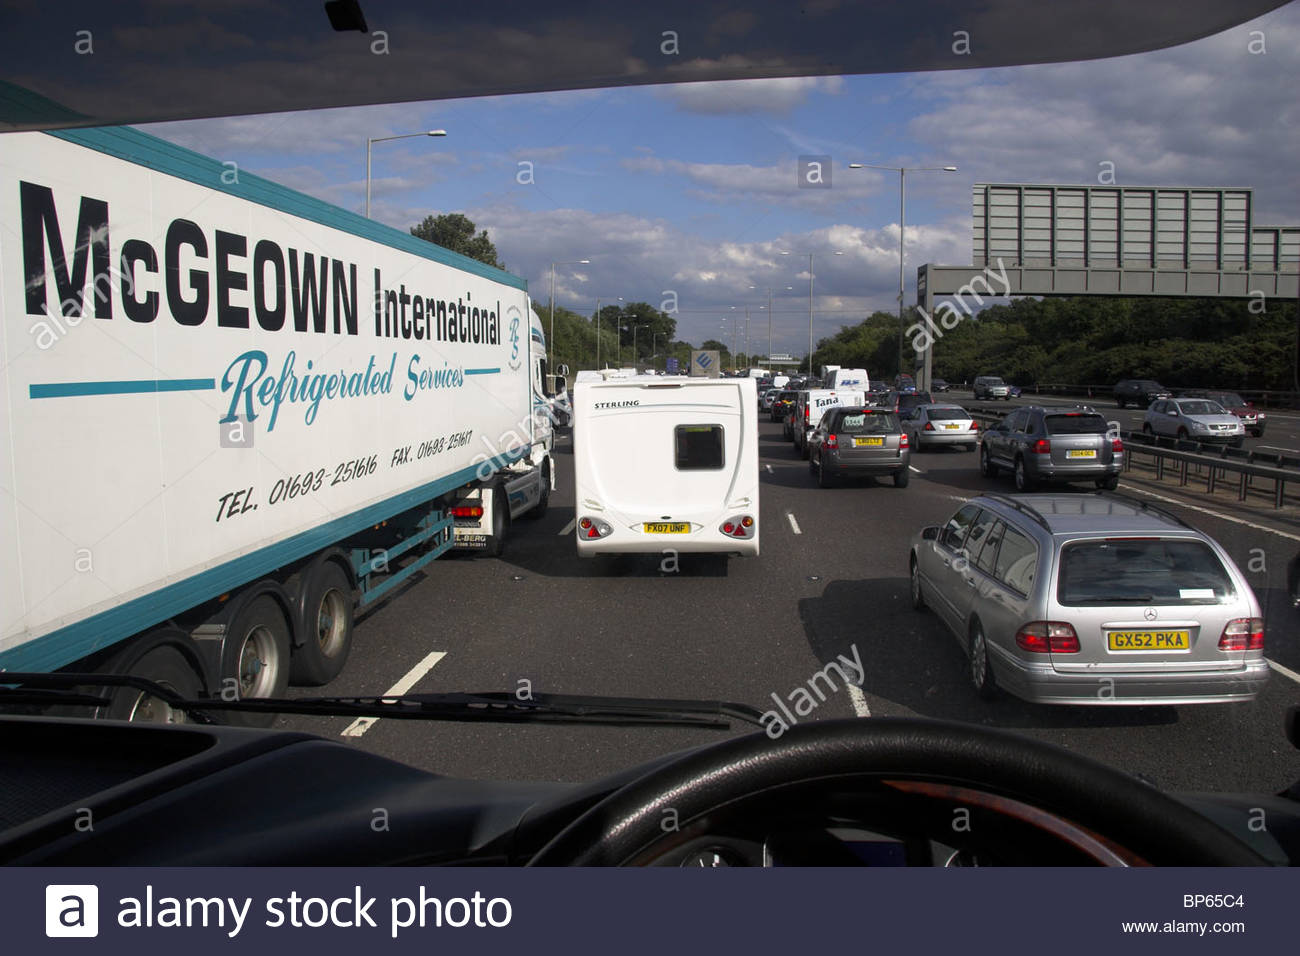 Lorry driver's view of traffic congestion on the M25 motorway, UK. - Stock Image